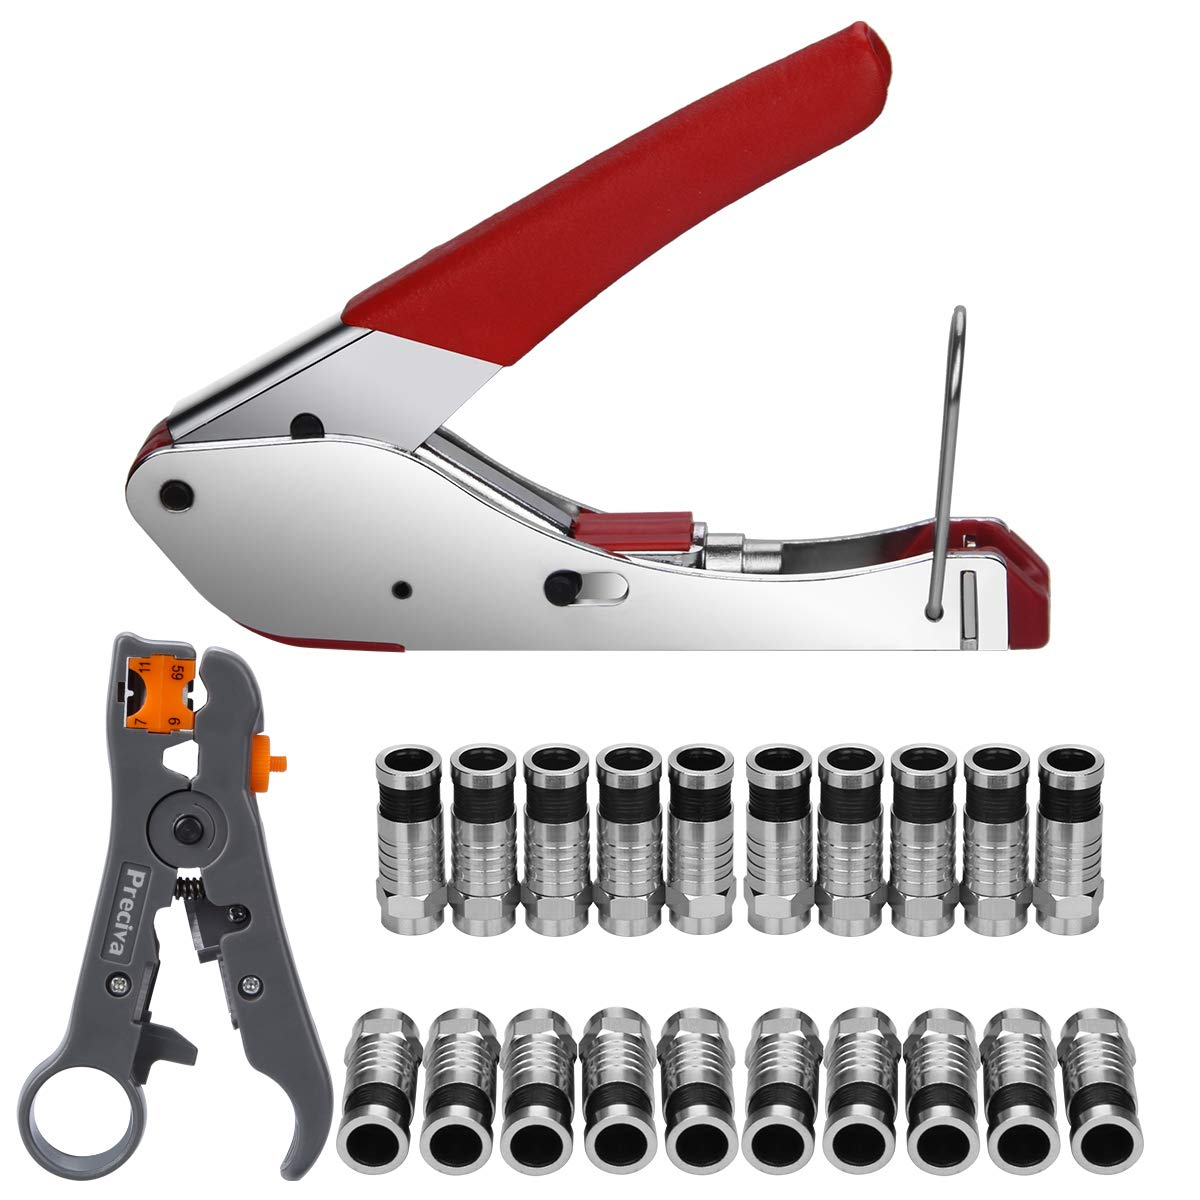 Preciva Coax Cable Crimper, Coaxial Cable Compression Tool Kit with Crimp Tool, Double-blade Wire Terminal Stripper Adjustable for Coaxial Cable RG59/6/58/174, 20 F Connectors(for RG6 Cable&Cable TV)